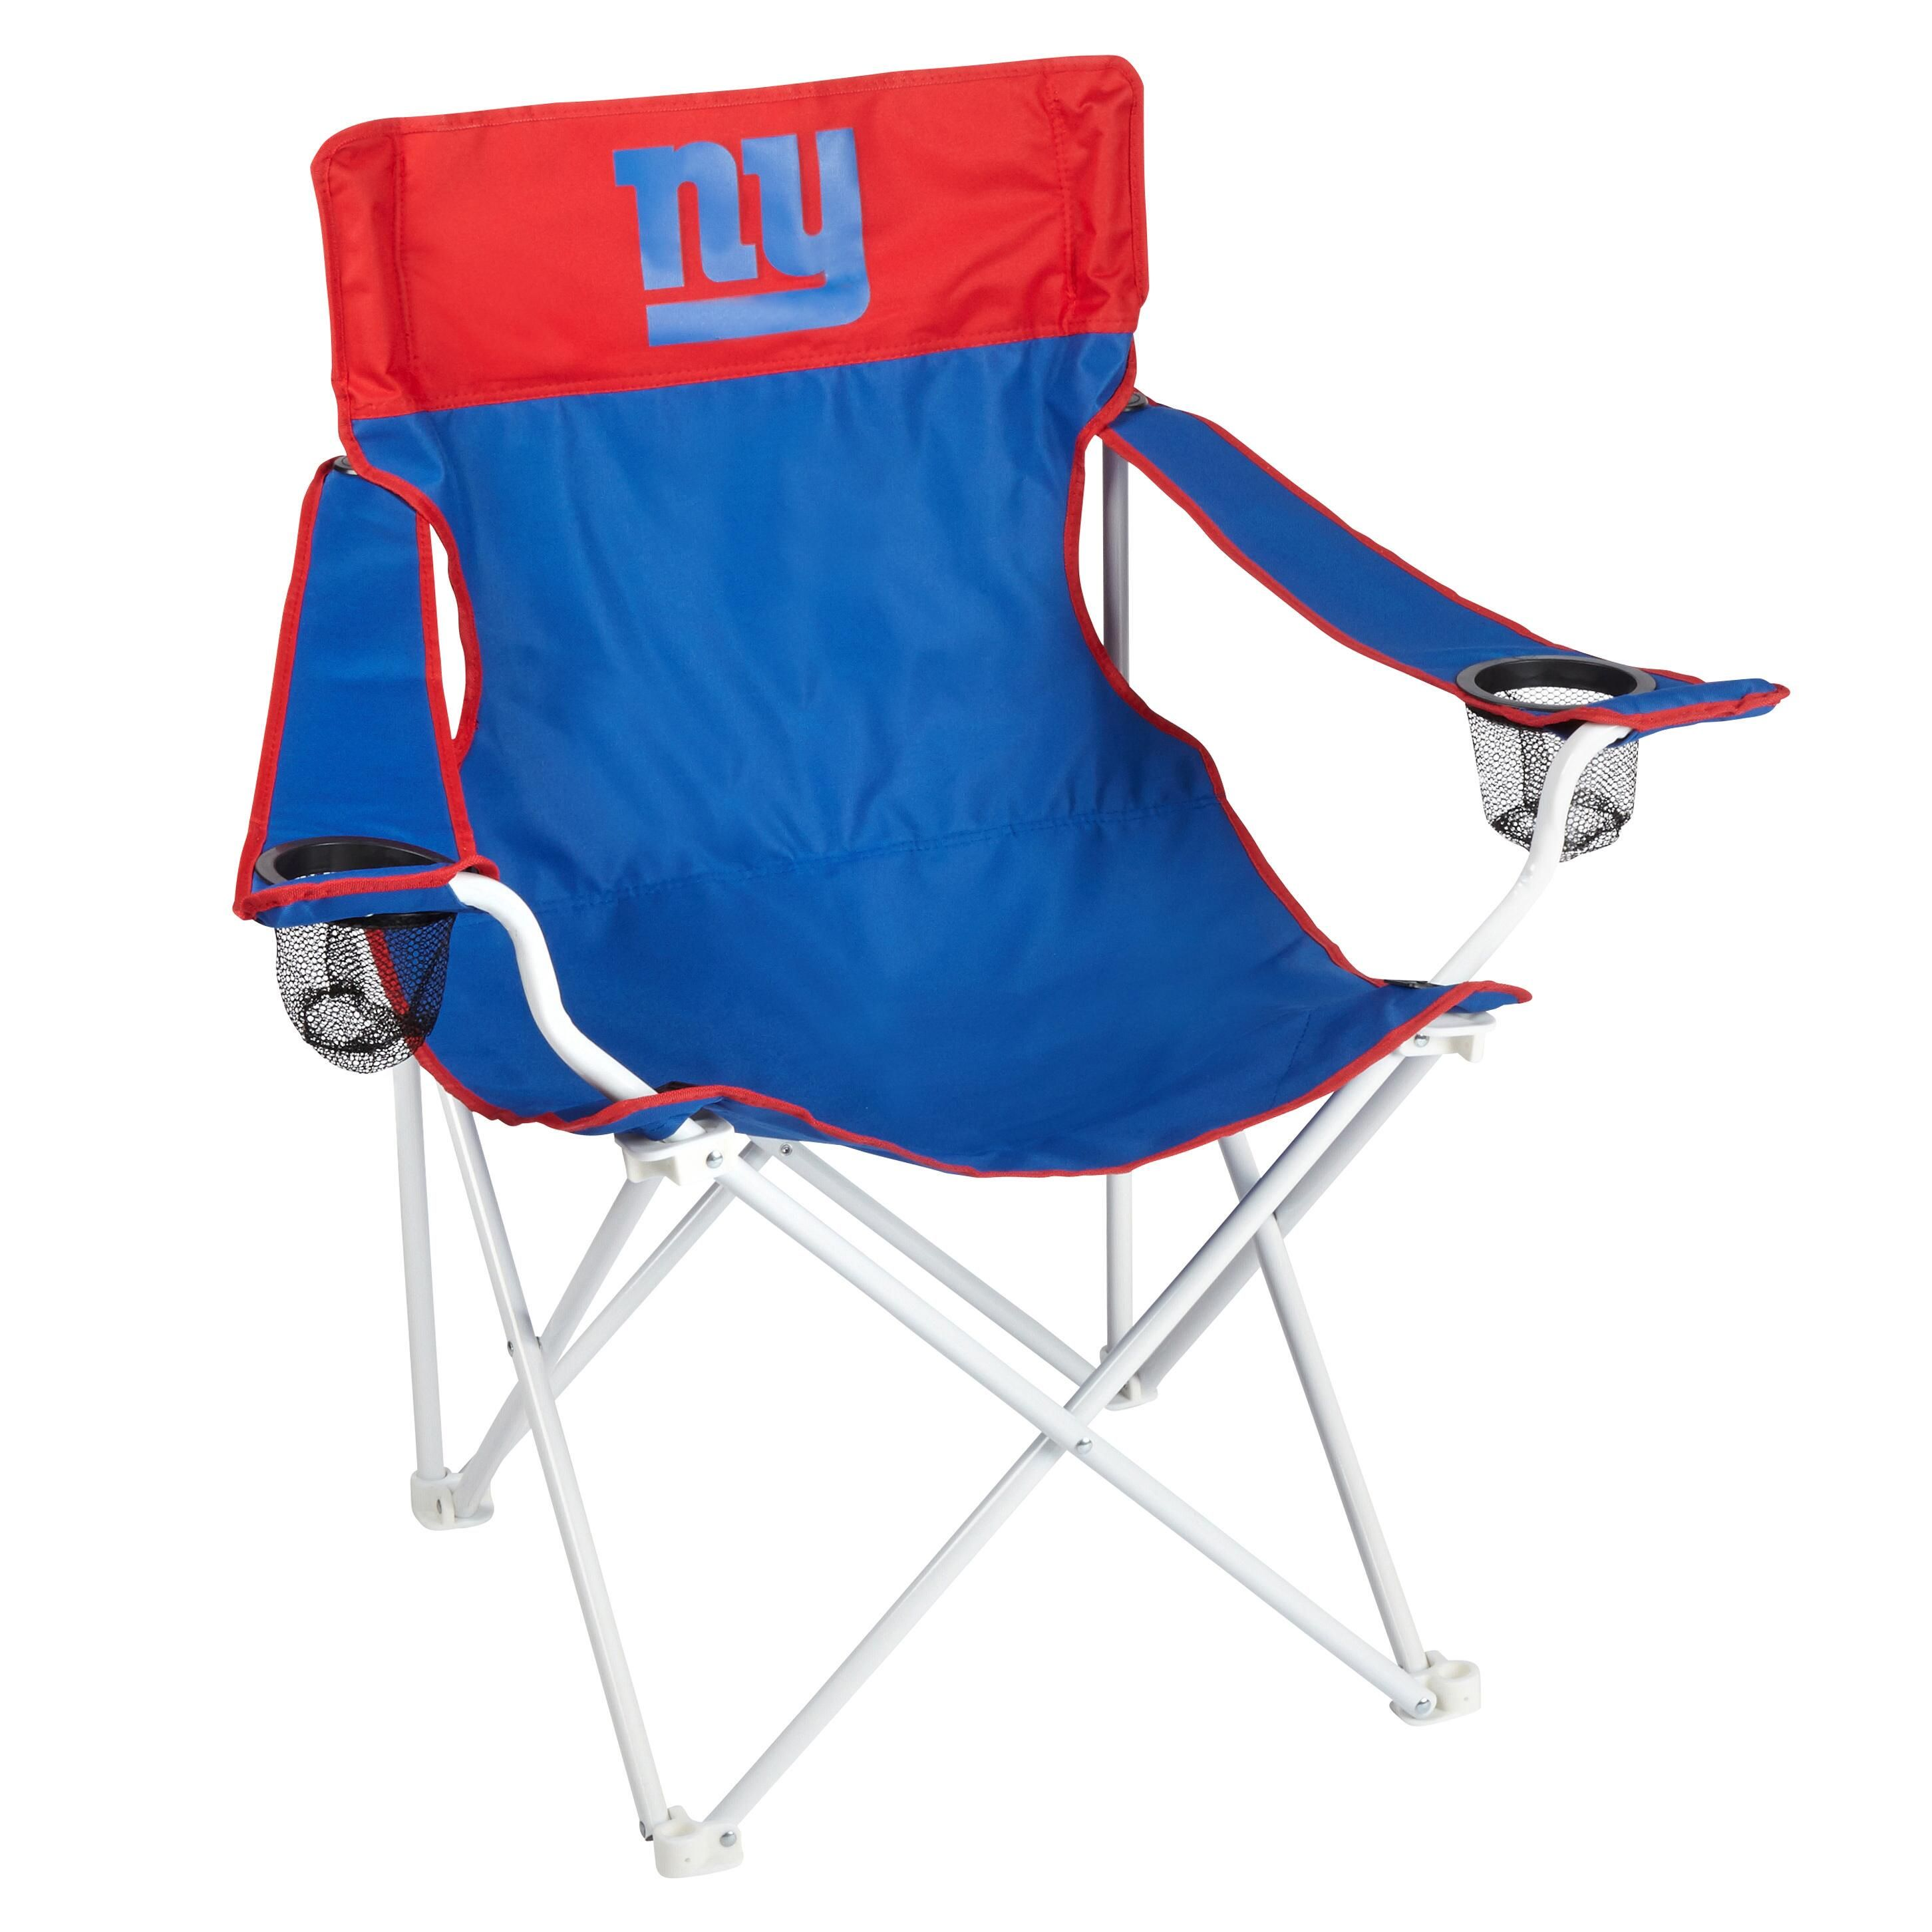 Wondrous Nfl New York Giants Big Boy Chair York Nfl Giants Ocoug Best Dining Table And Chair Ideas Images Ocougorg